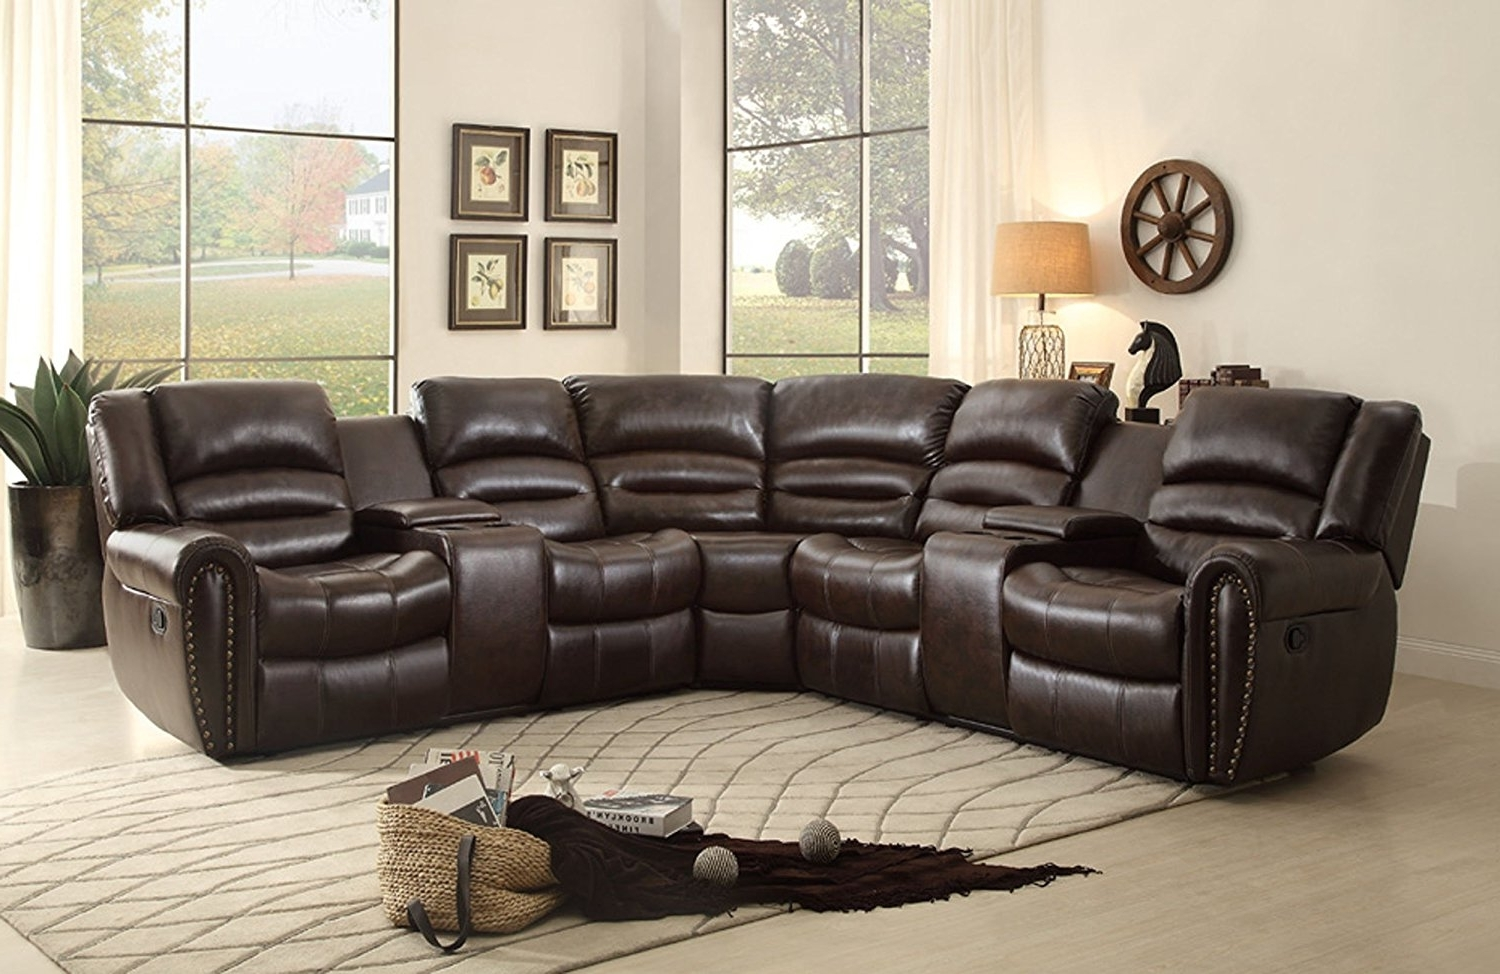 Best And Newest Sofa : Small Leather Sectional Sofa With Recliner Leather Recliner Pertaining To Sectional Sofas With Cup Holders (View 8 of 15)